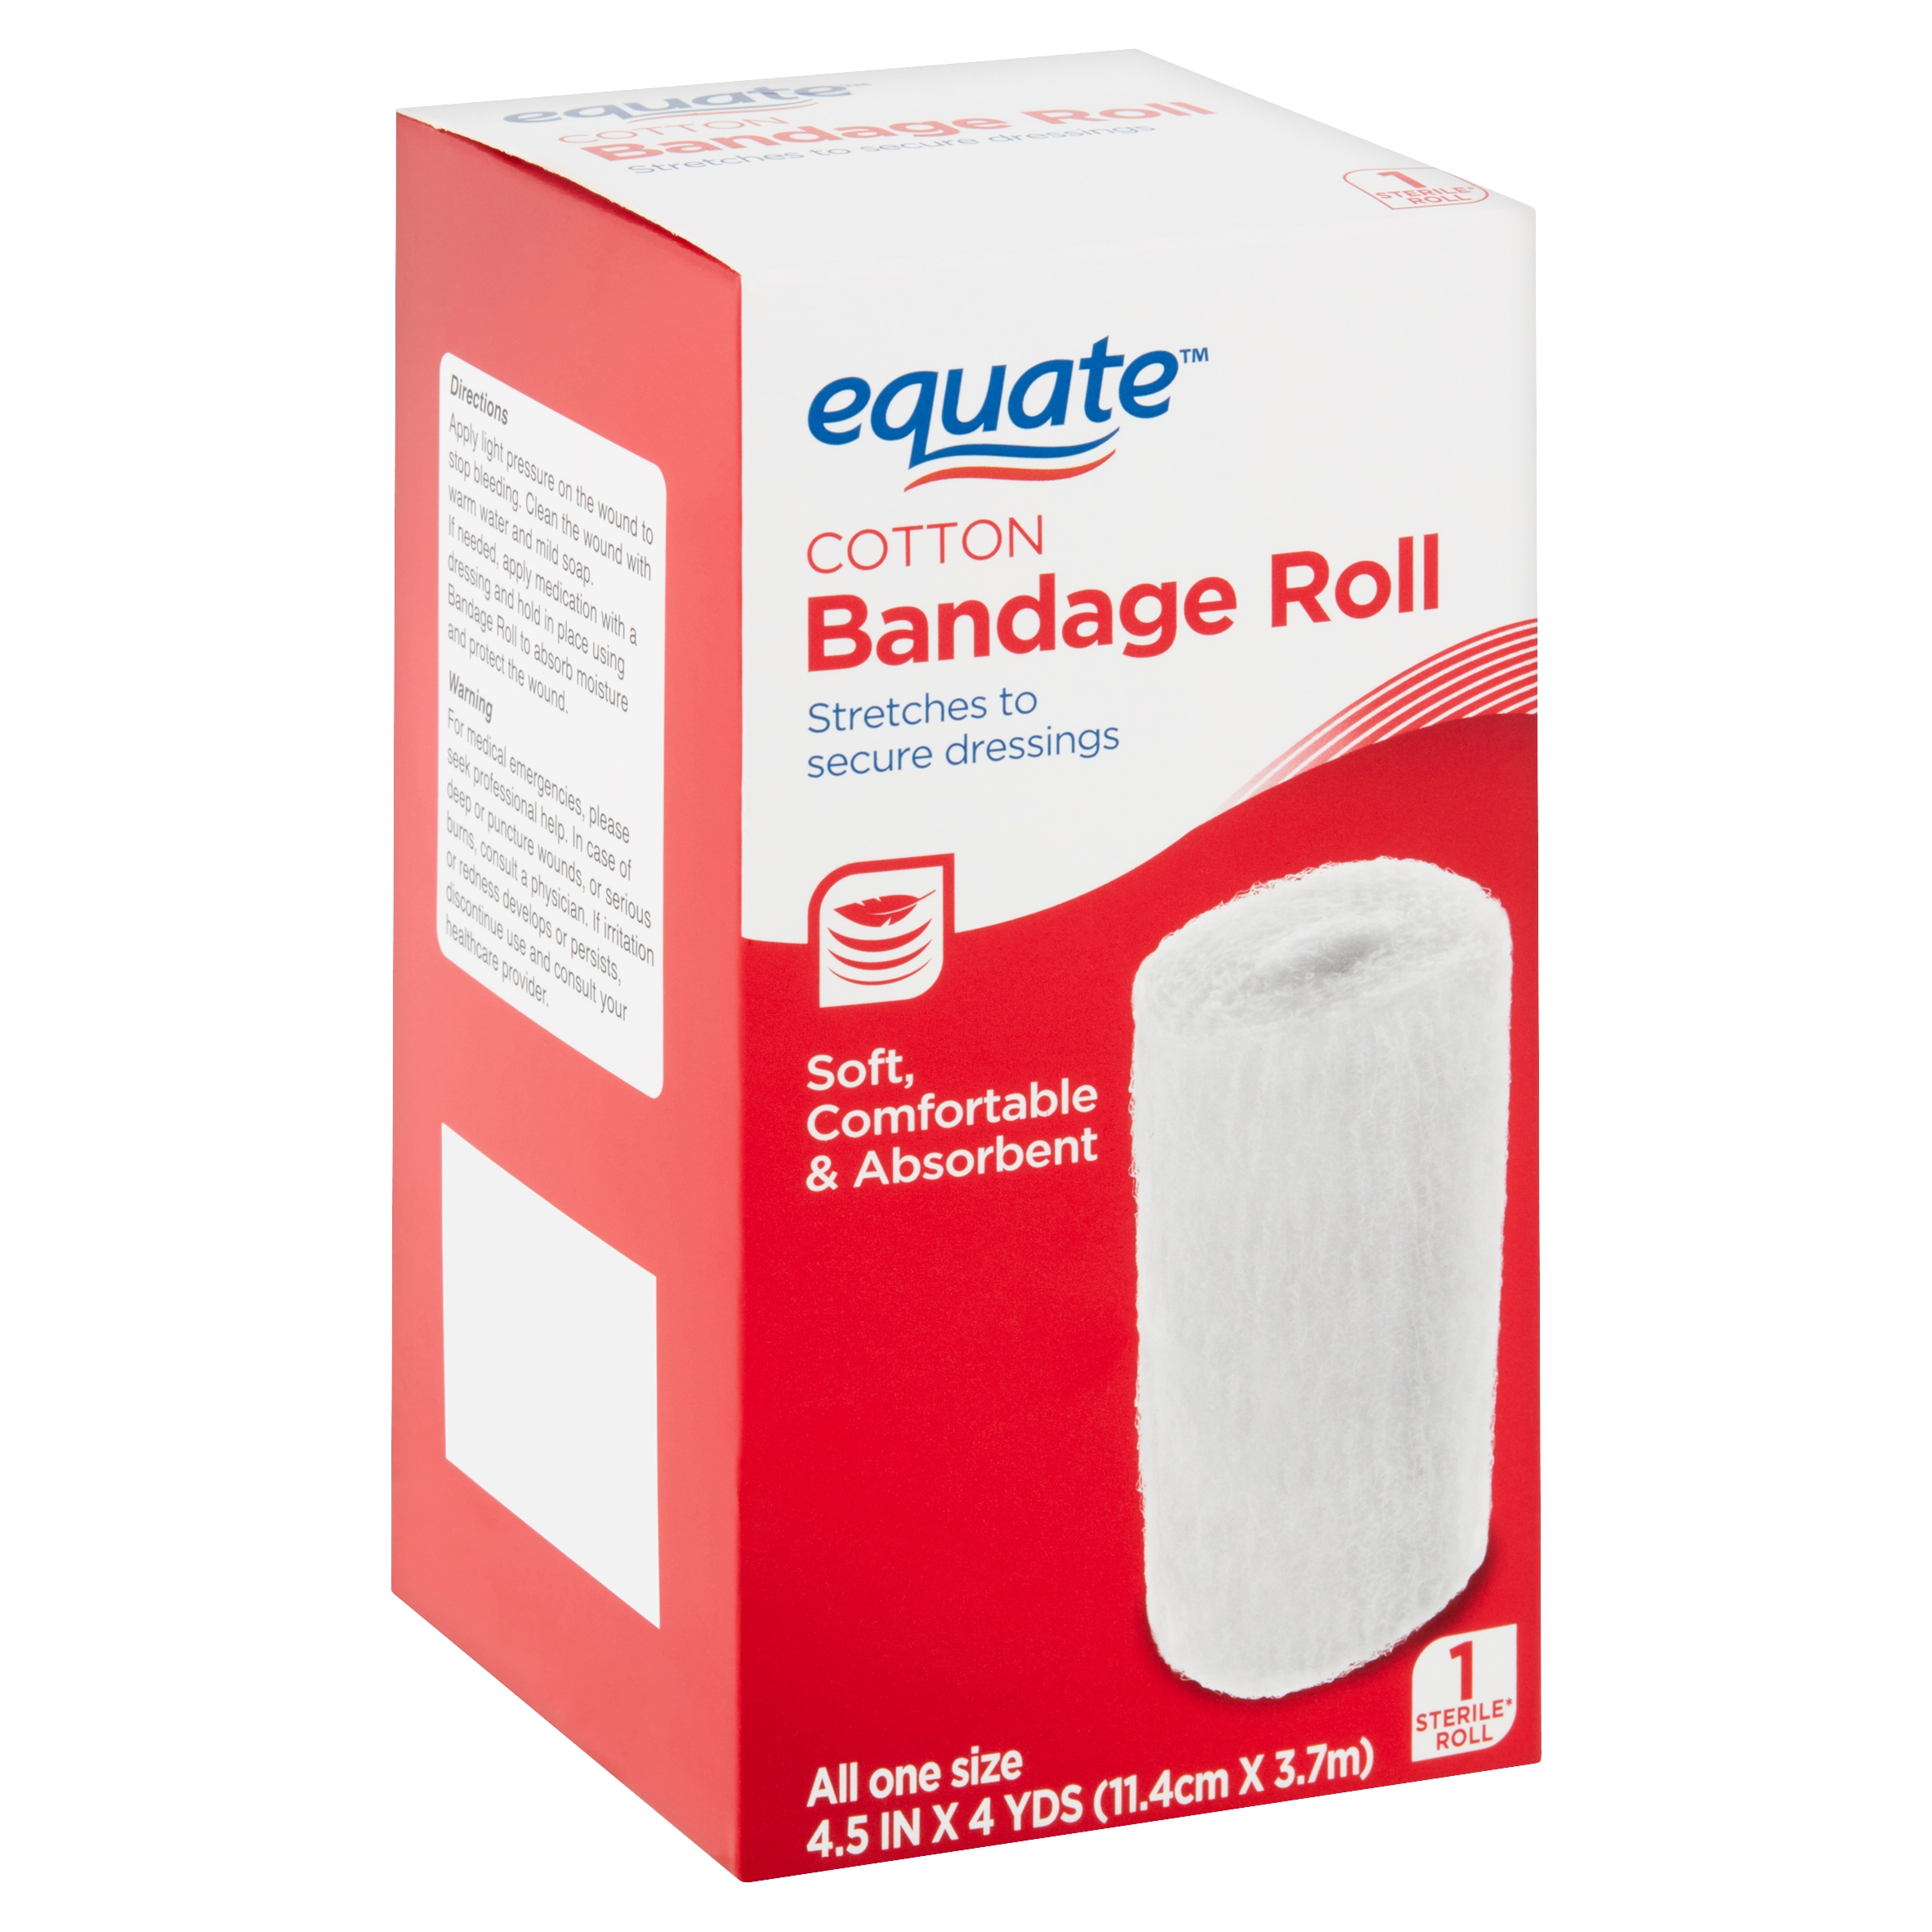 Equate Cotton Bandage Roll